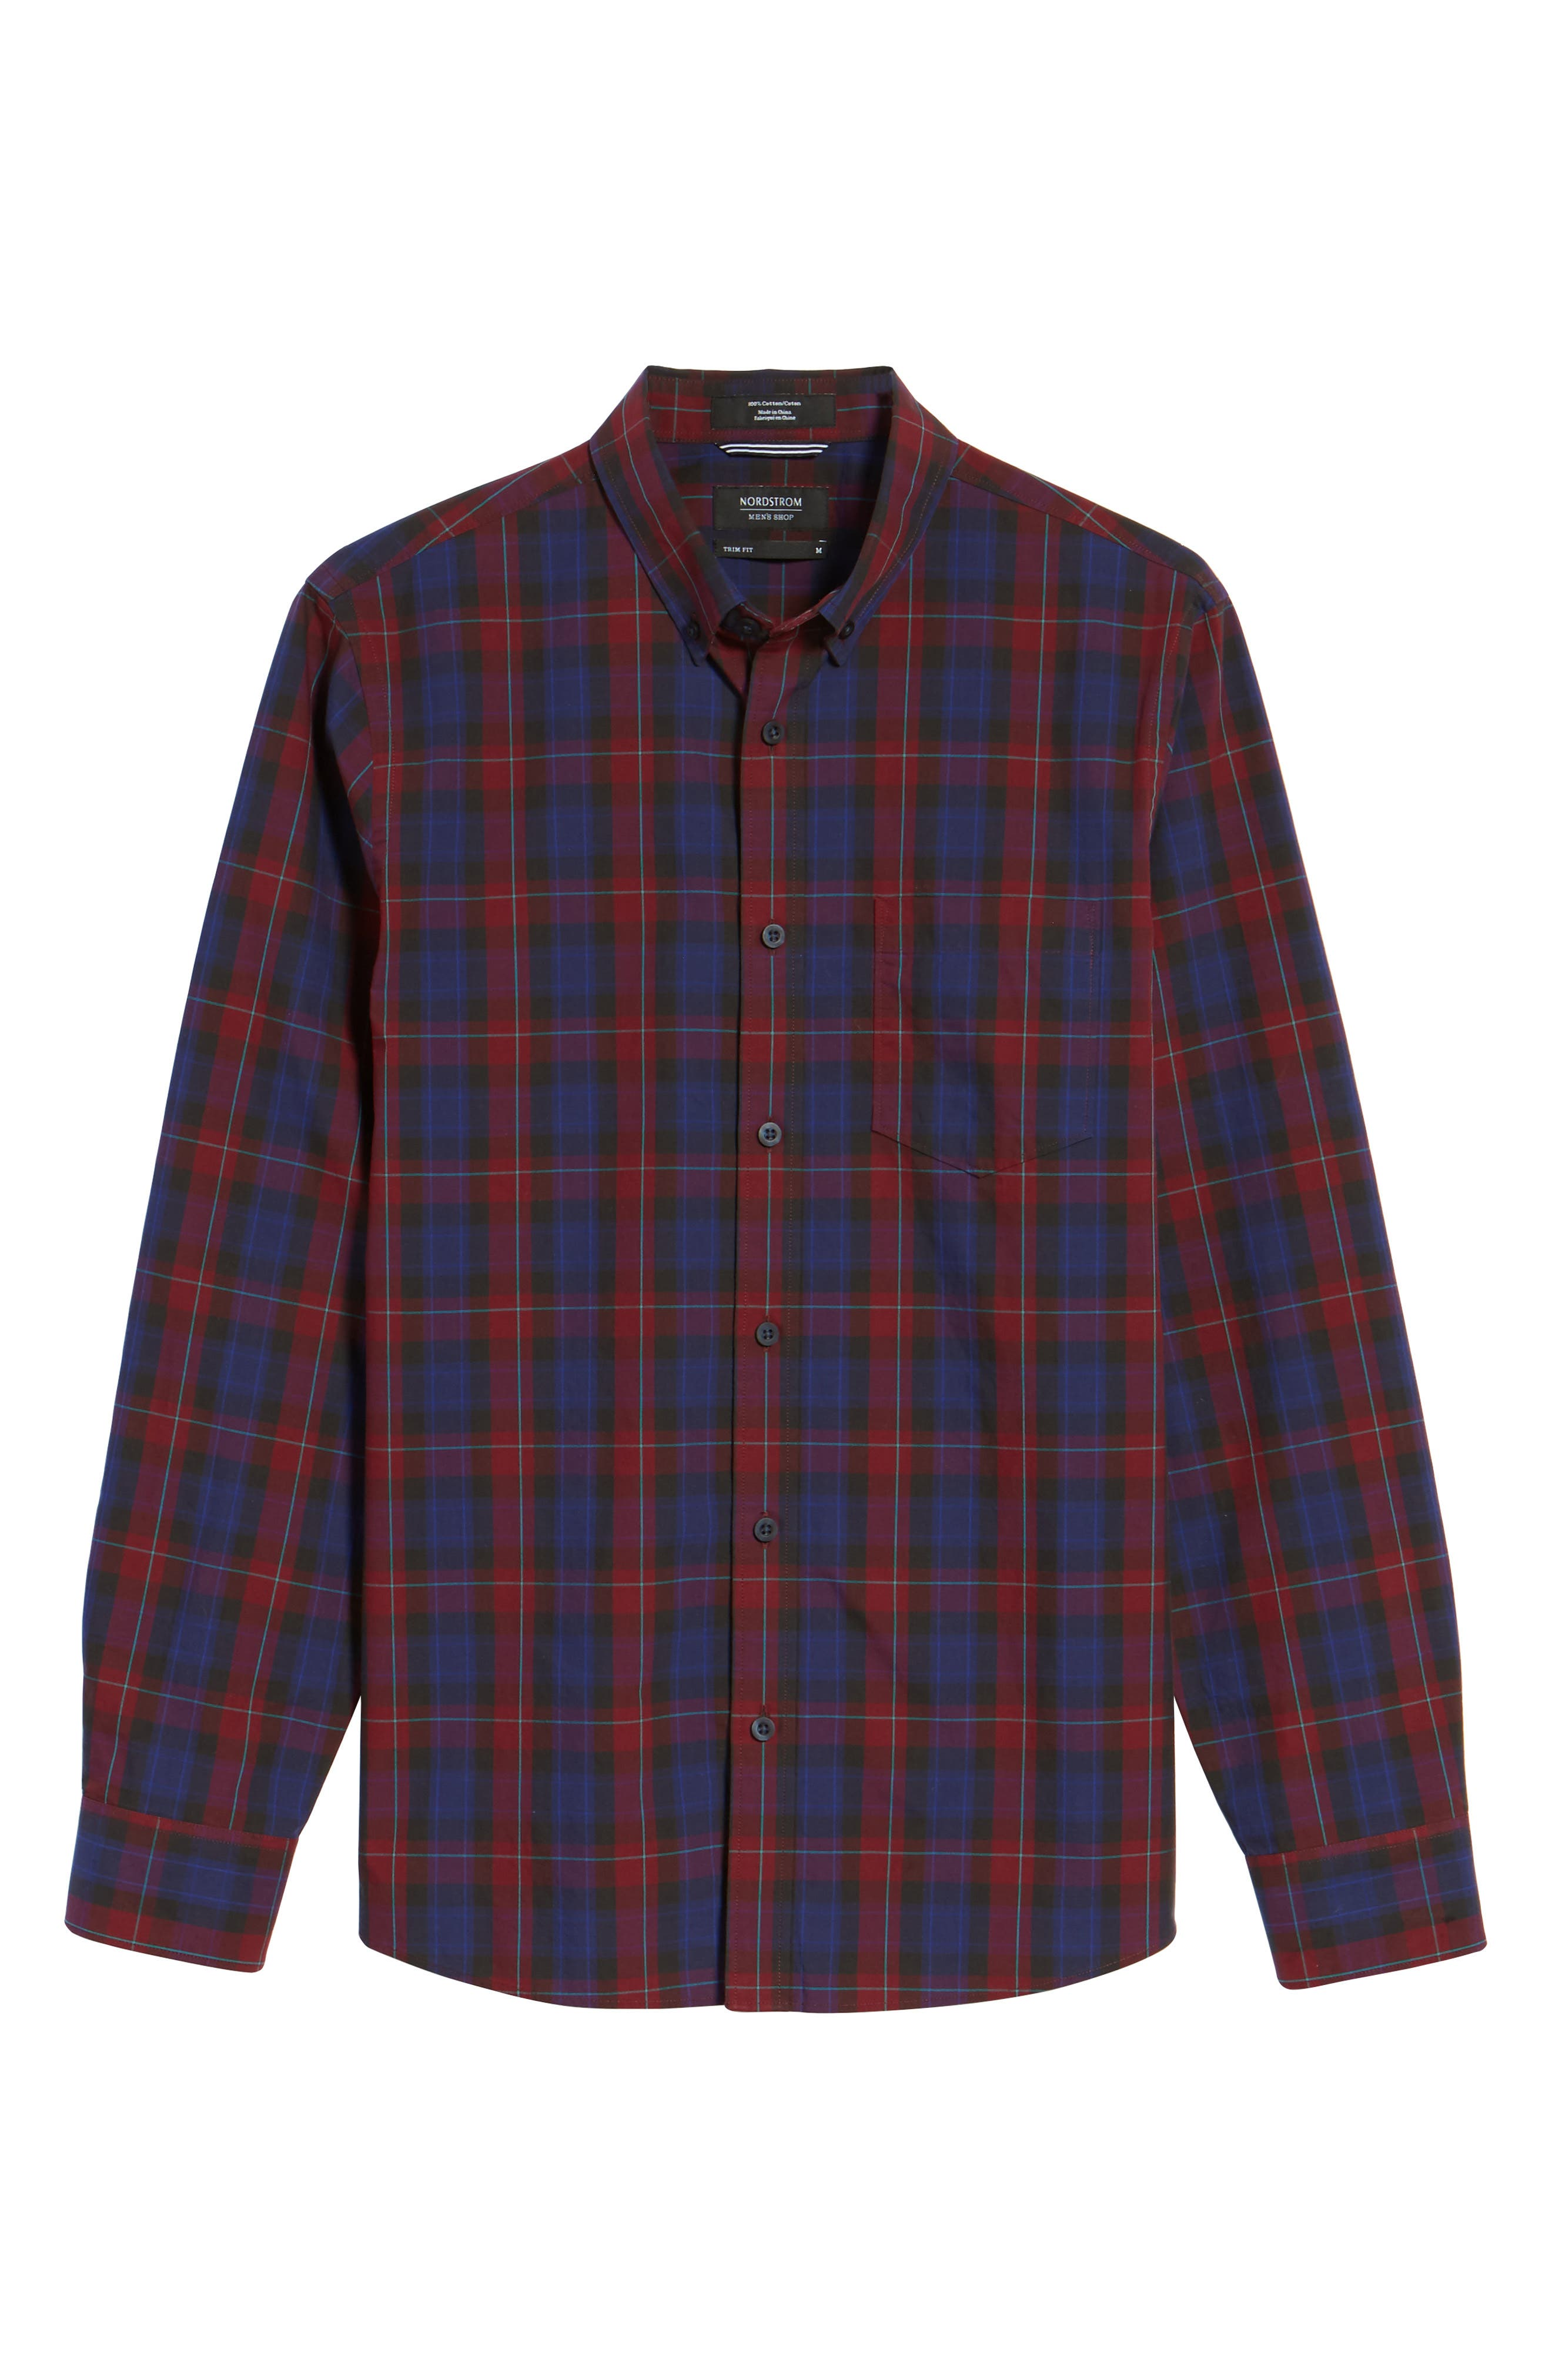 Slim Fit Plaid Sport Shirt,                             Alternate thumbnail 6, color,                             Red Ruby Large Check